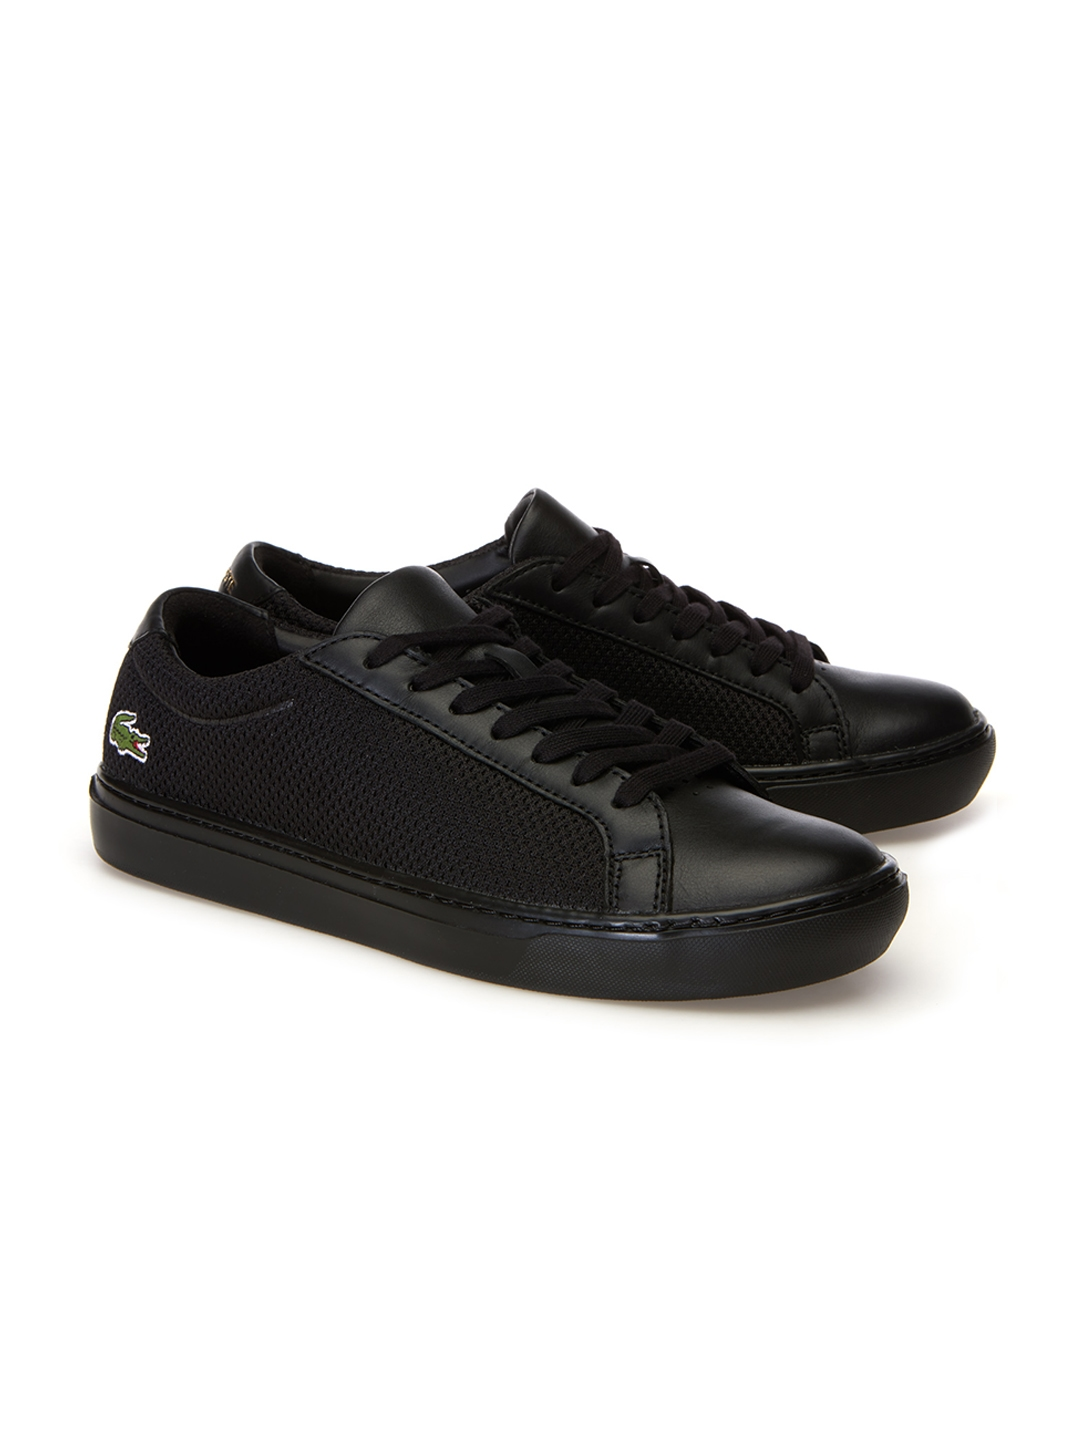 2239b1eb8 Buy Lacoste Men Black Leather Sneakers - Casual Shoes for Men ...